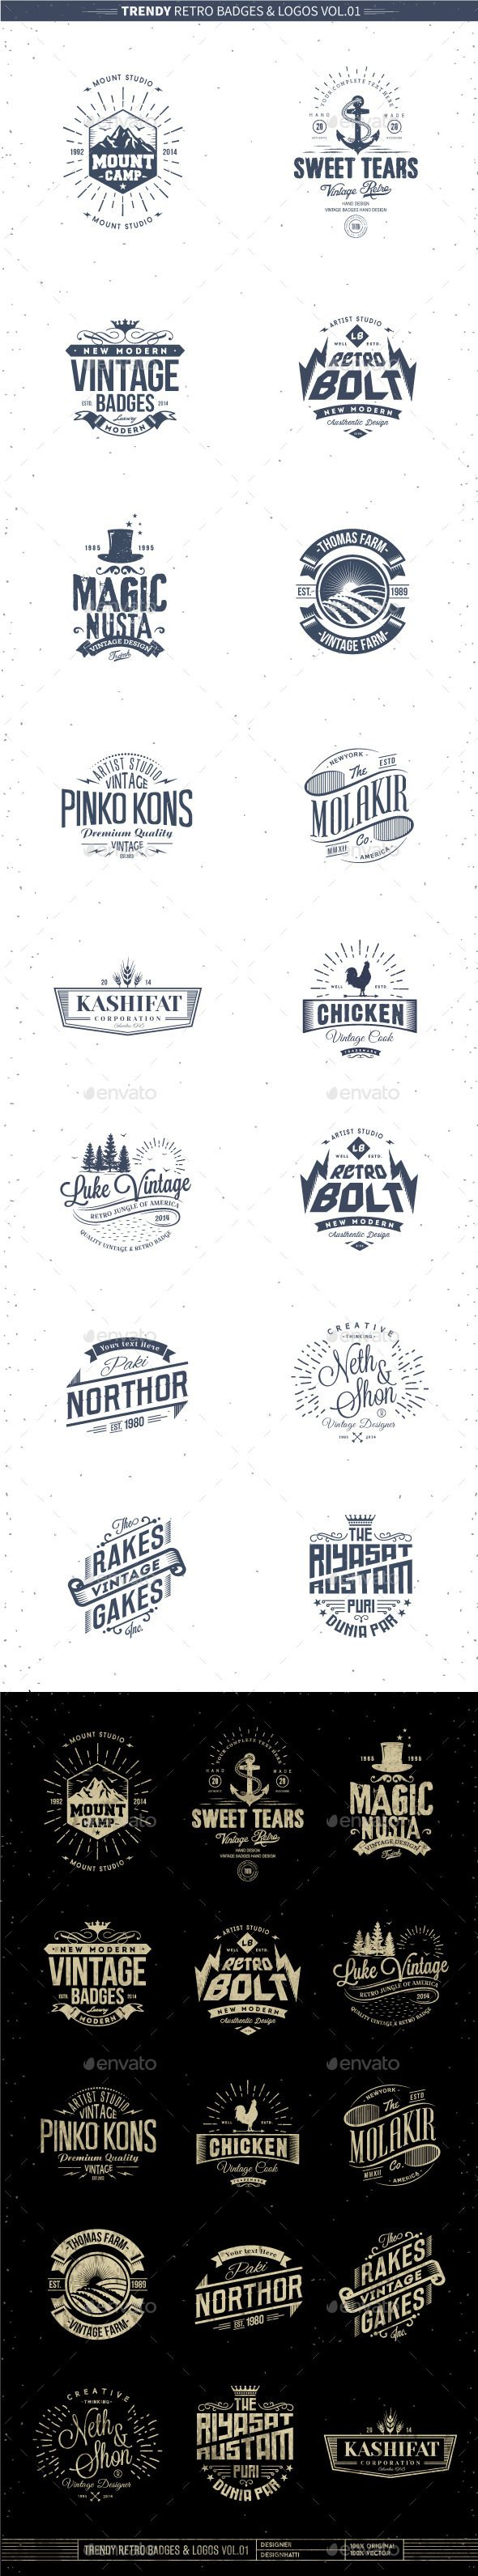 Trendy Retro Badges and Logos EPS Template • Only available here ➝ http://graphicriver.net/item/trendy-retro-badges-and-logos-vol01/10358811?ref=pxcr